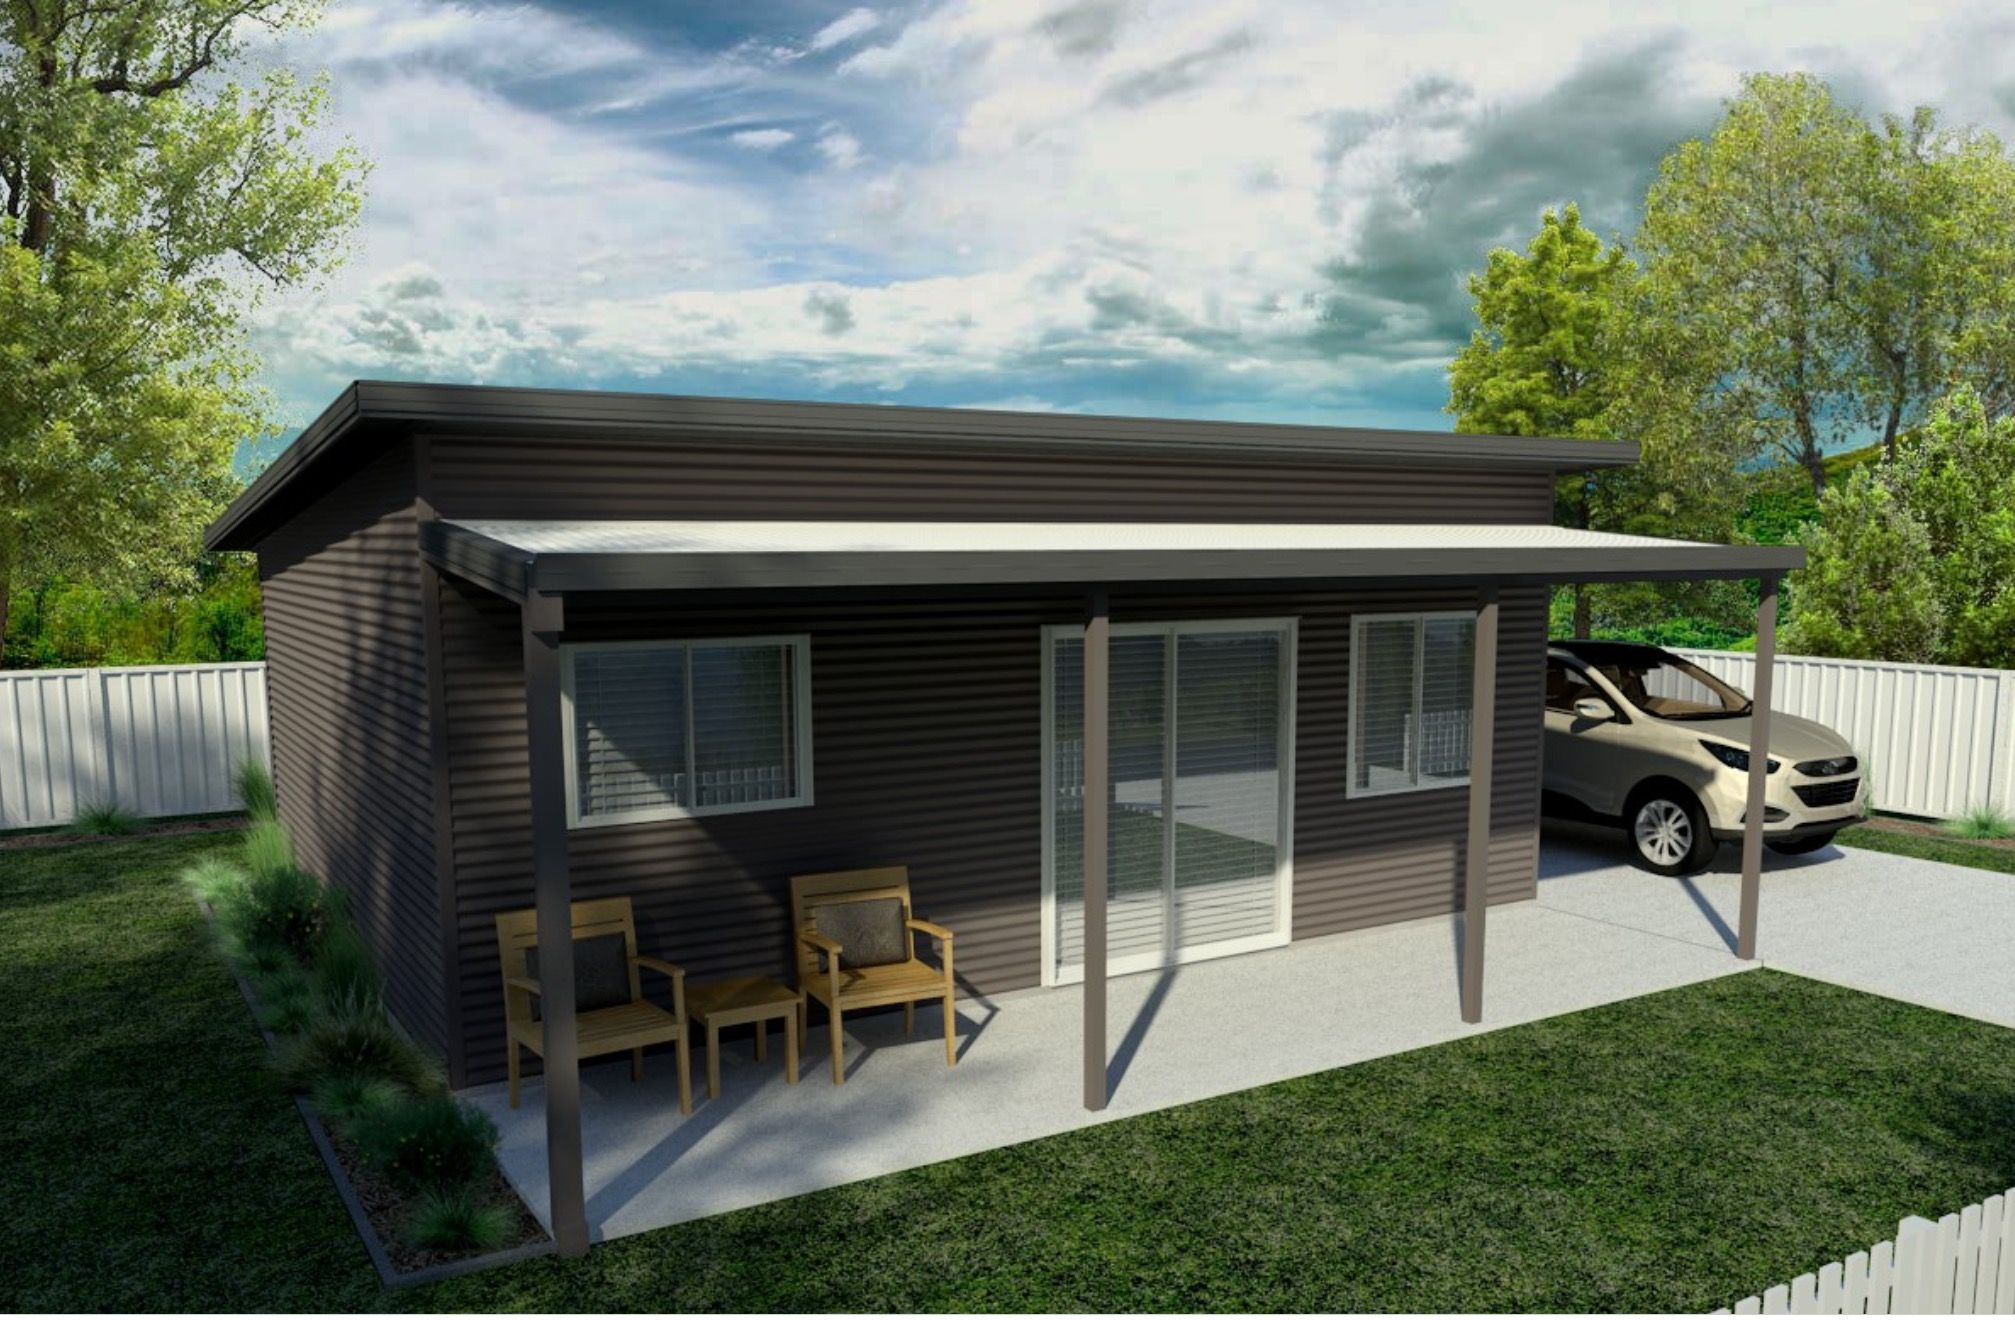 Our Ascent design featuring a contemporary skillion roof ...